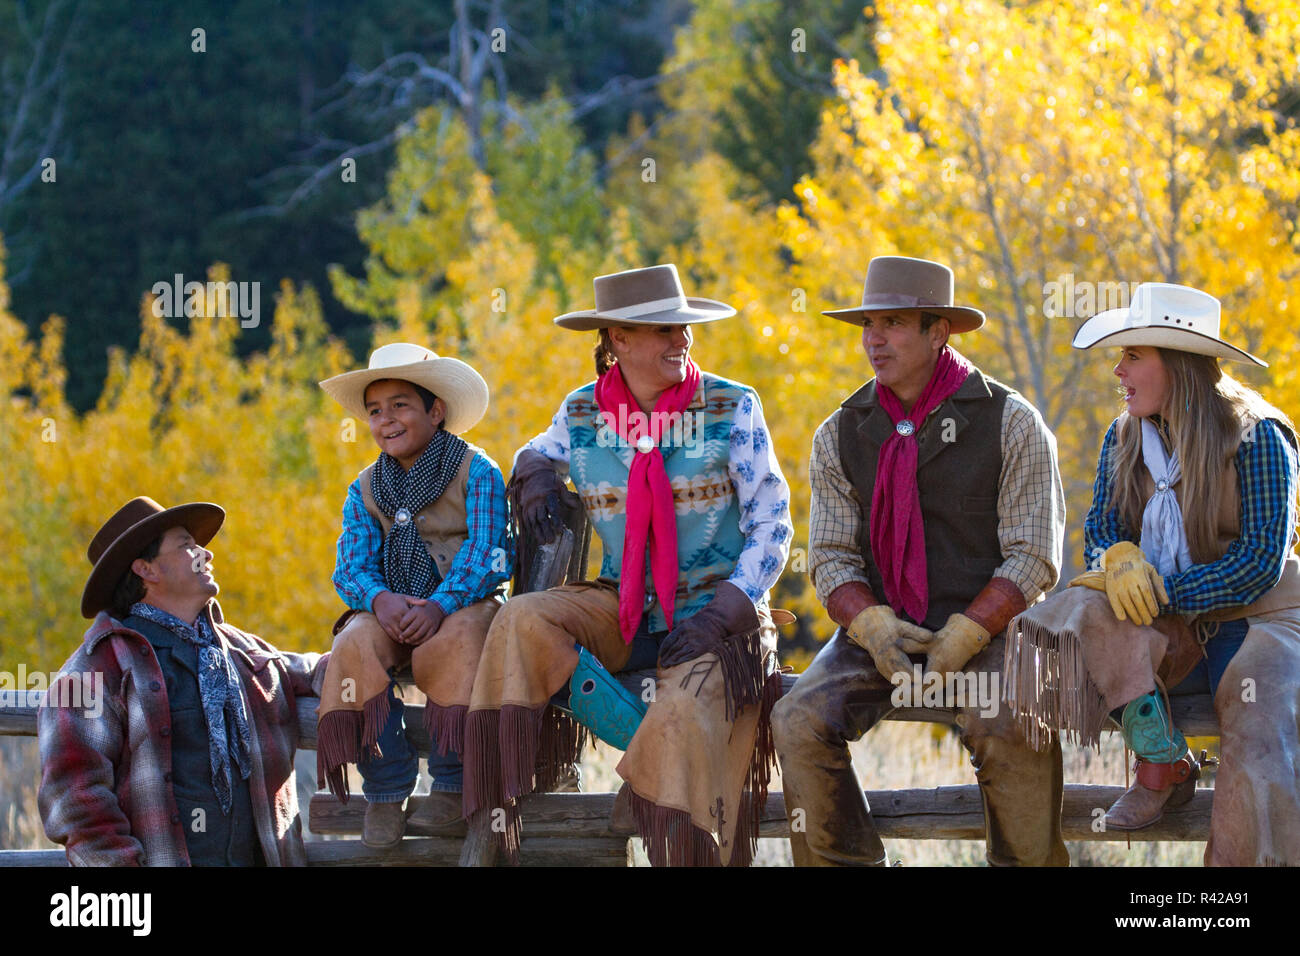 Usa, Wyoming, Shell, The Hideout Ranch, Cowboys and Cowgirls Enjoy Camaraderie (MR, PR) - Stock Image